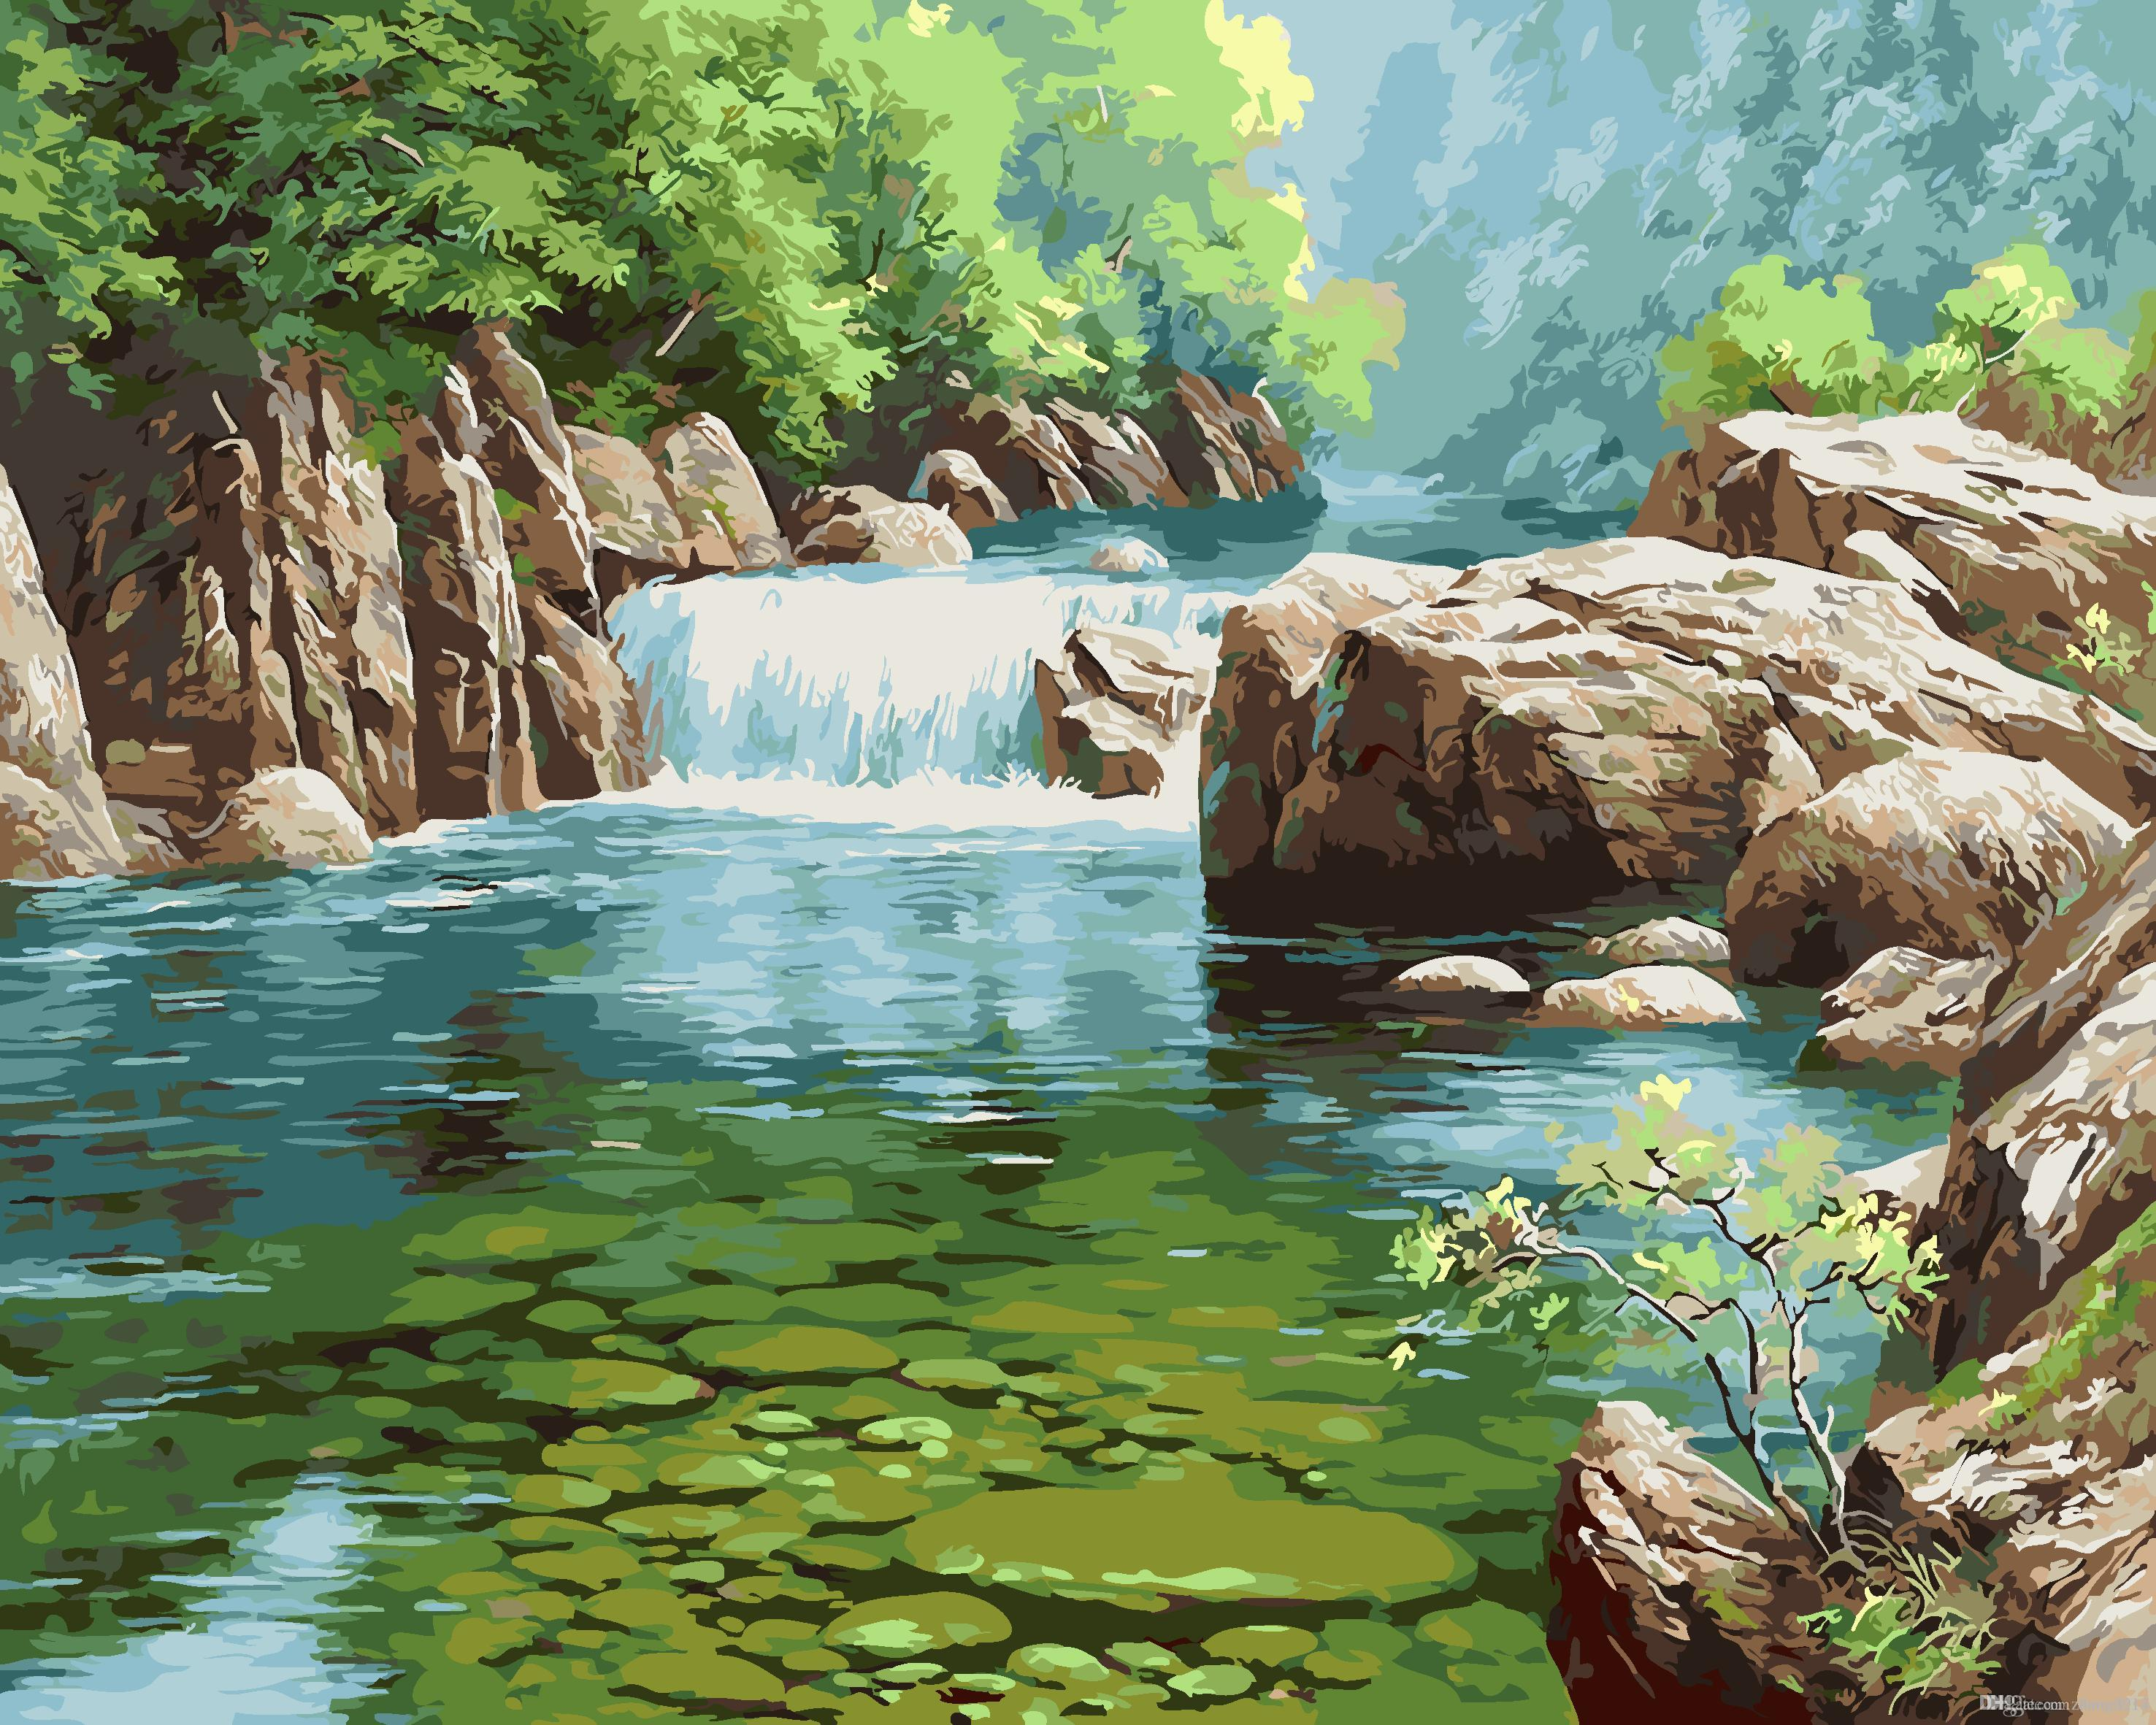 2019 16x20 inches green forest wood and river scenery diy paint on canvas drawing by numbers kits art acrylic oil painting frame for adults from zhang8914